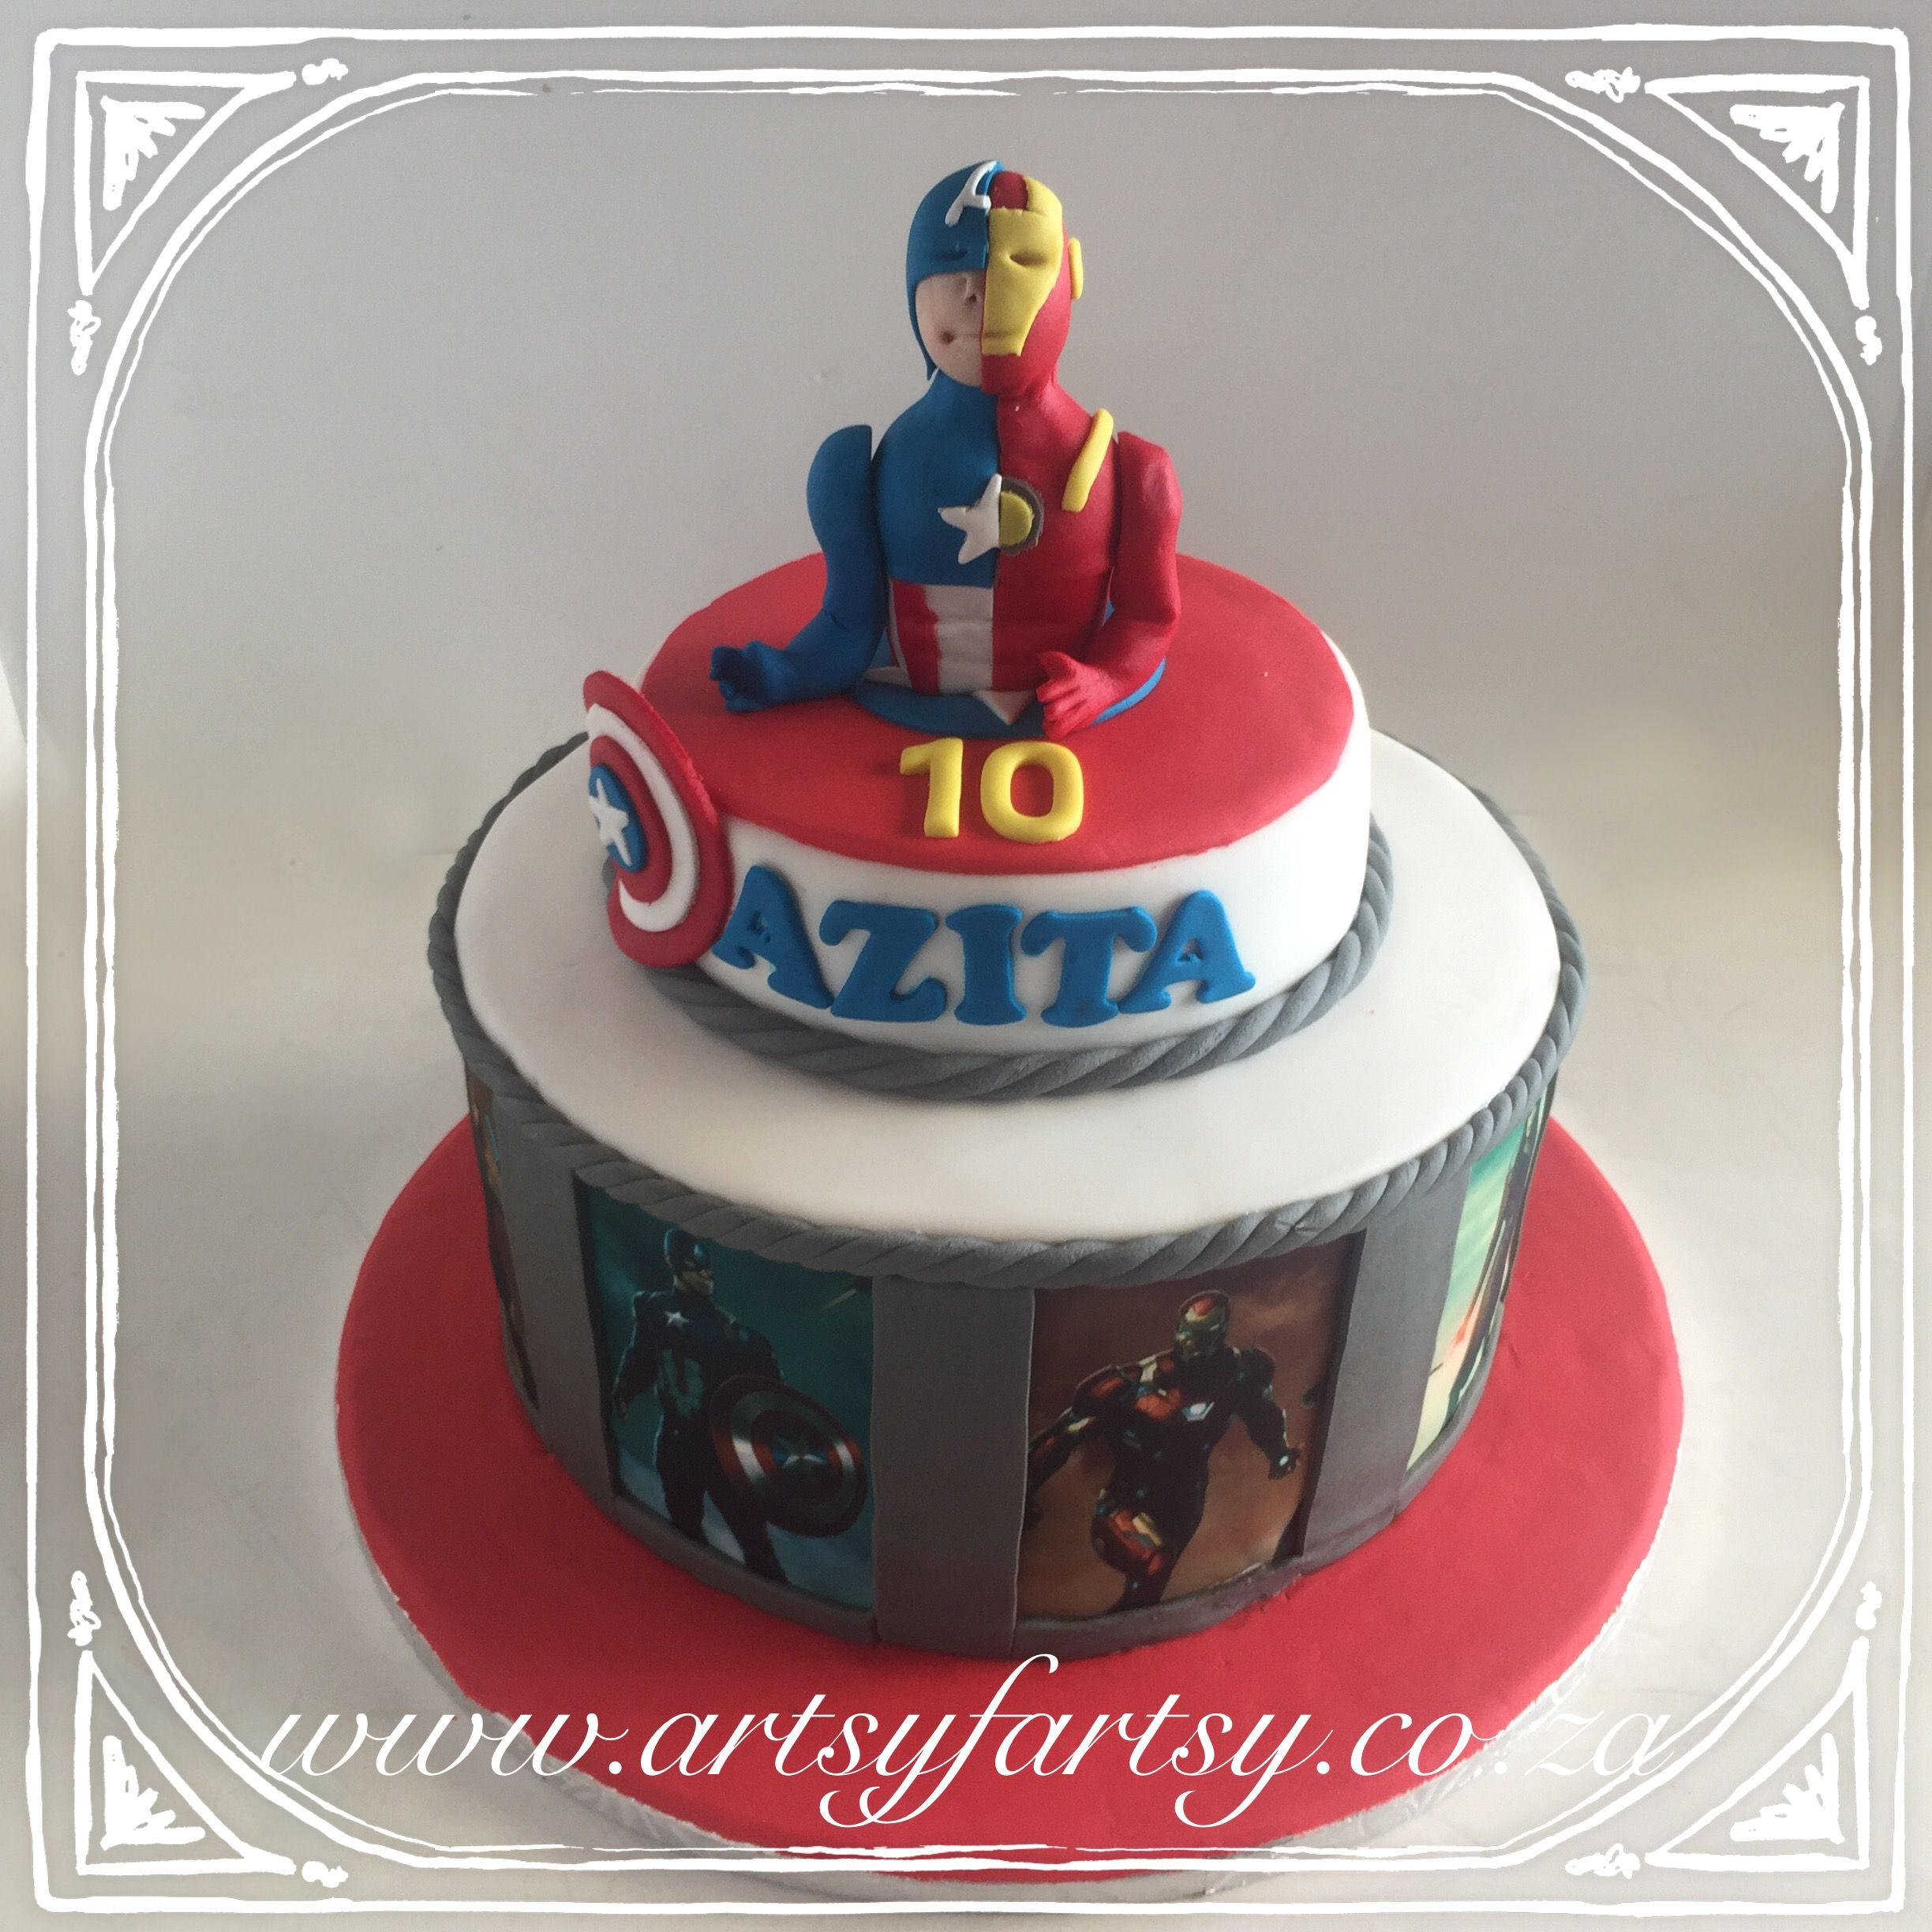 Iron Man and Captain America Civil War Cake ironmancake